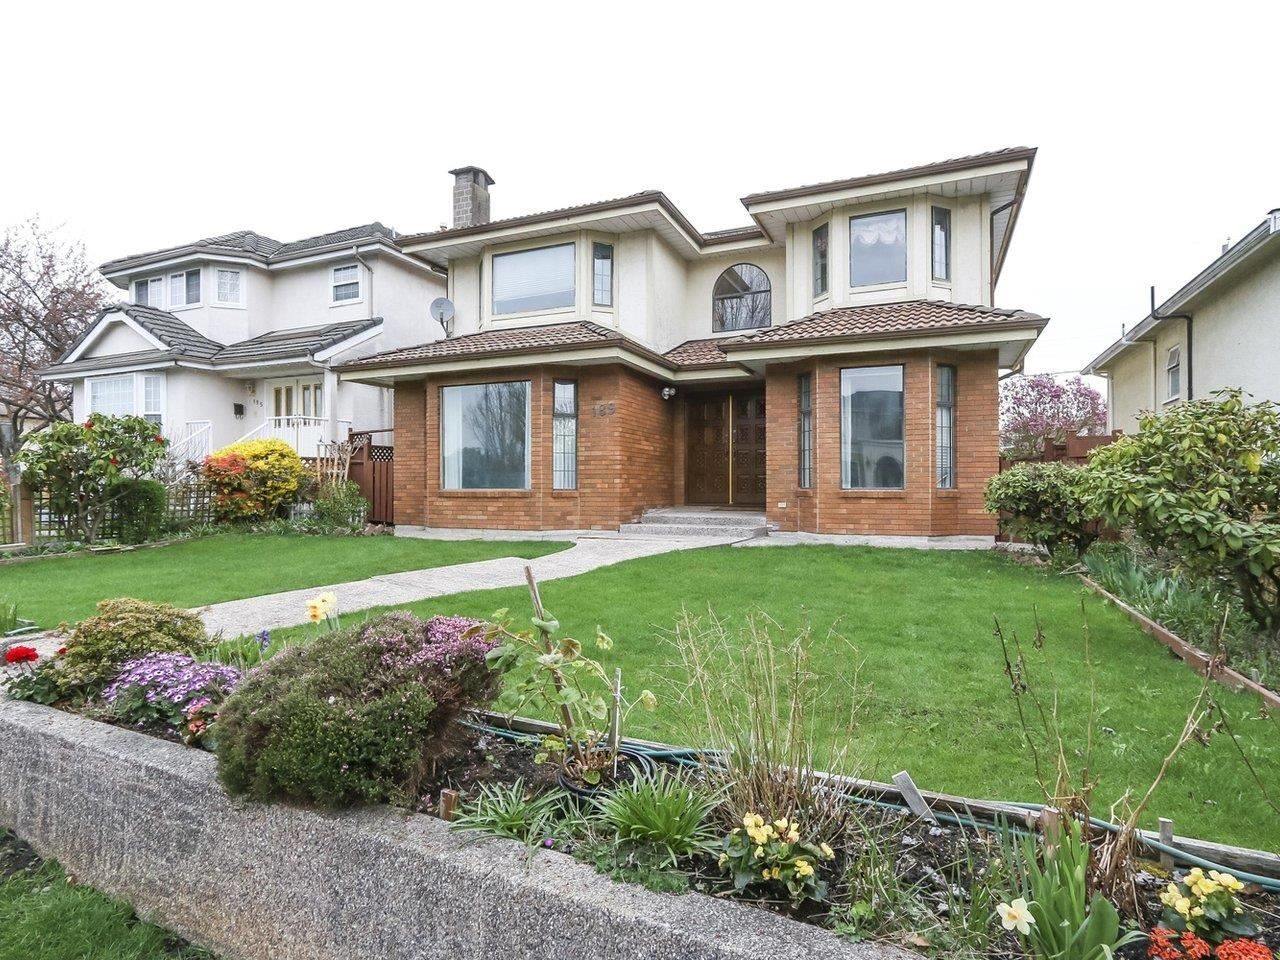 Main Photo: 189 W 46TH Avenue in Vancouver: Oakridge VW House for sale (Vancouver West)  : MLS®# R2607785